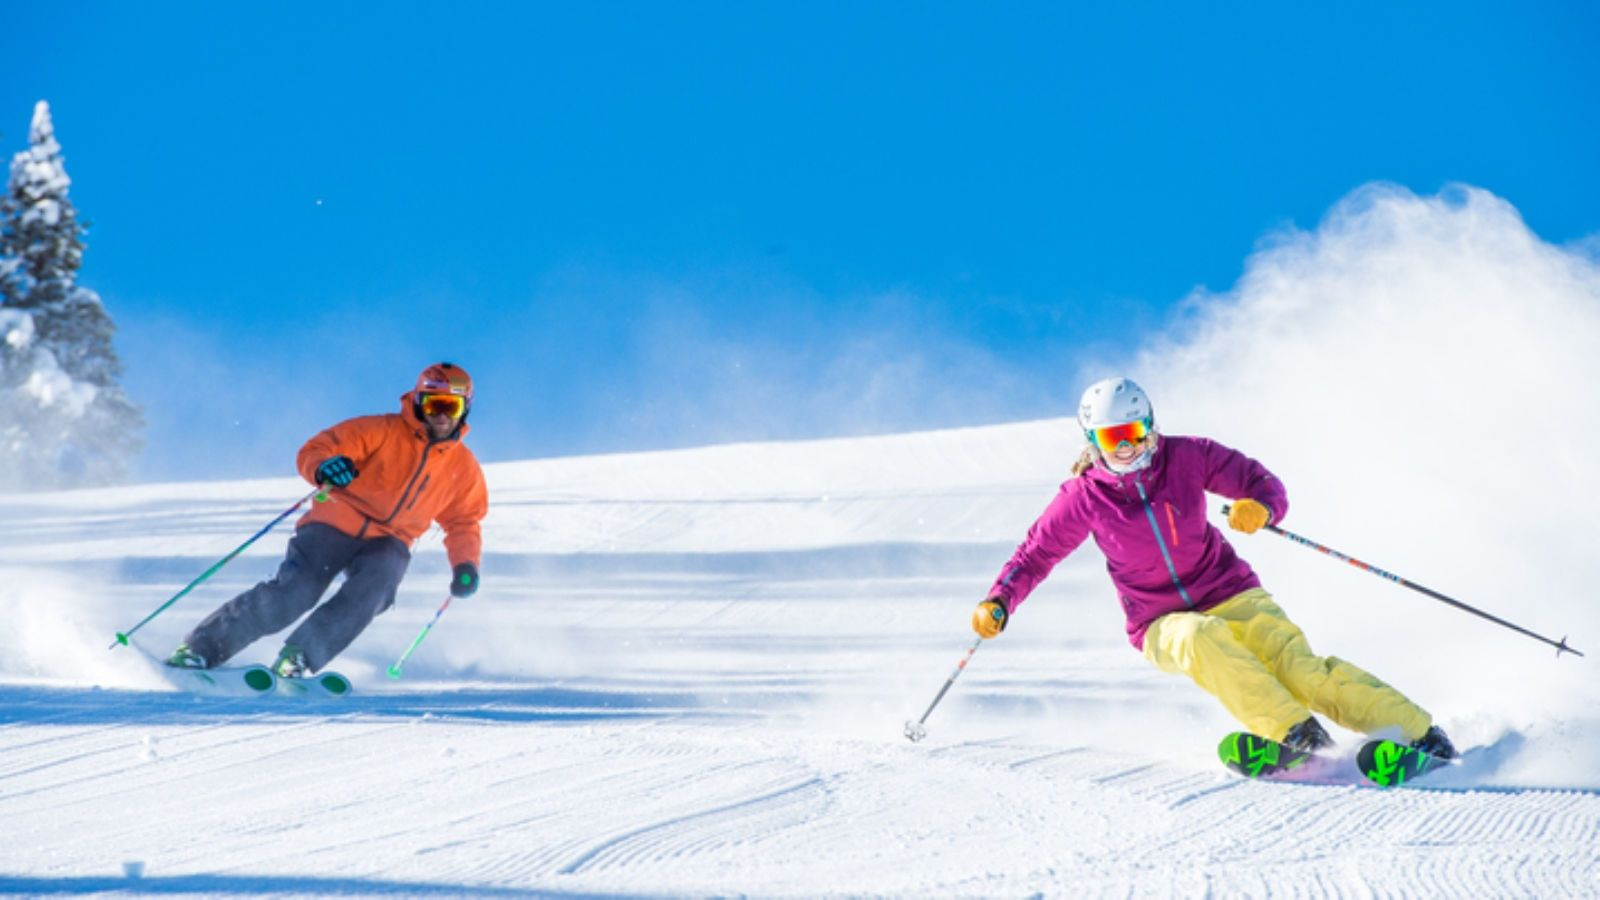 Four Mountain Sports - Couple Skiing